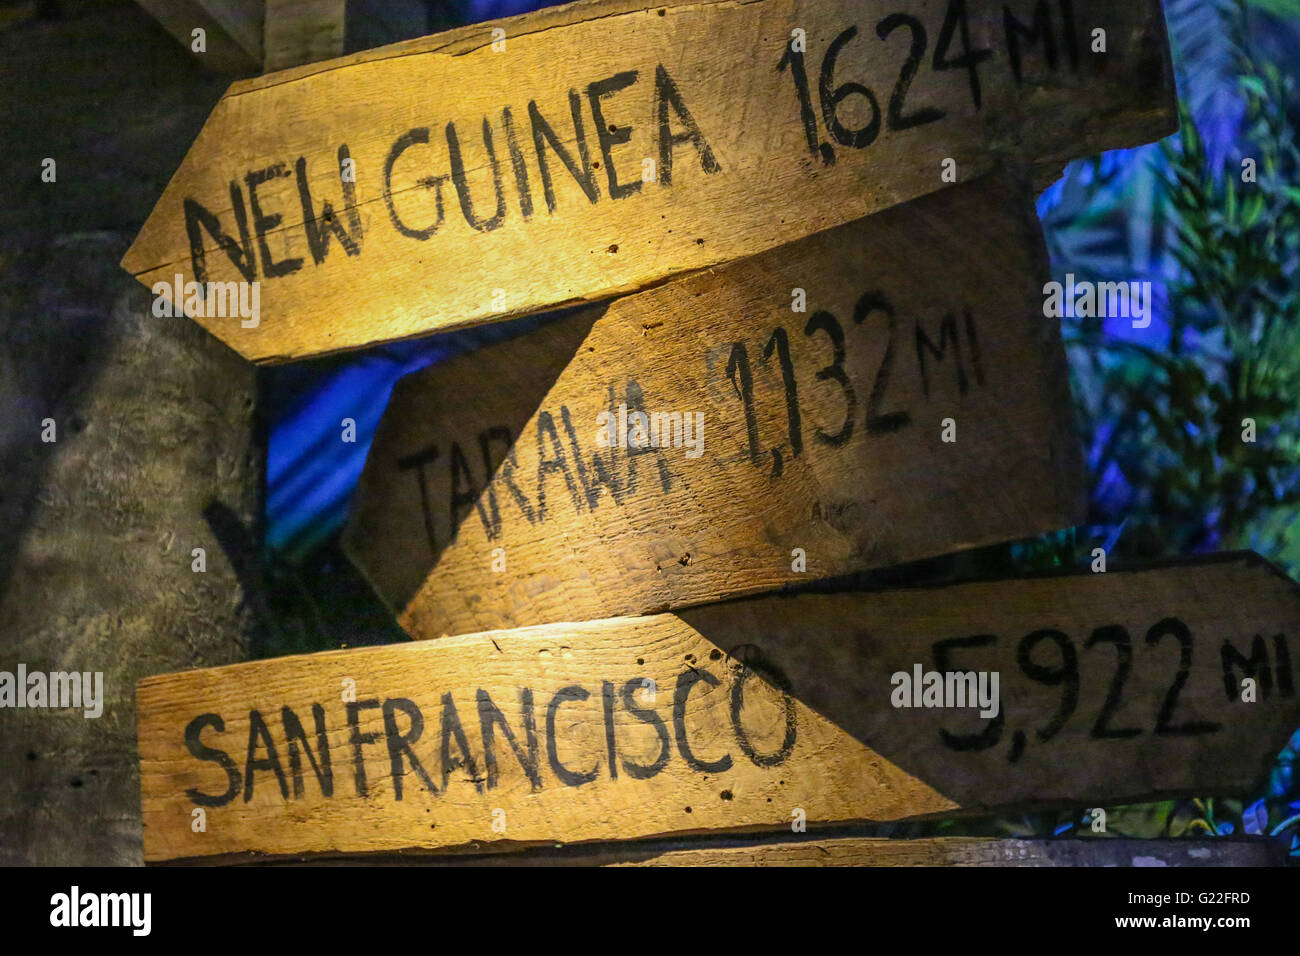 wooden arrow signs indicating the direction of various places and distances in miles - Stock Image